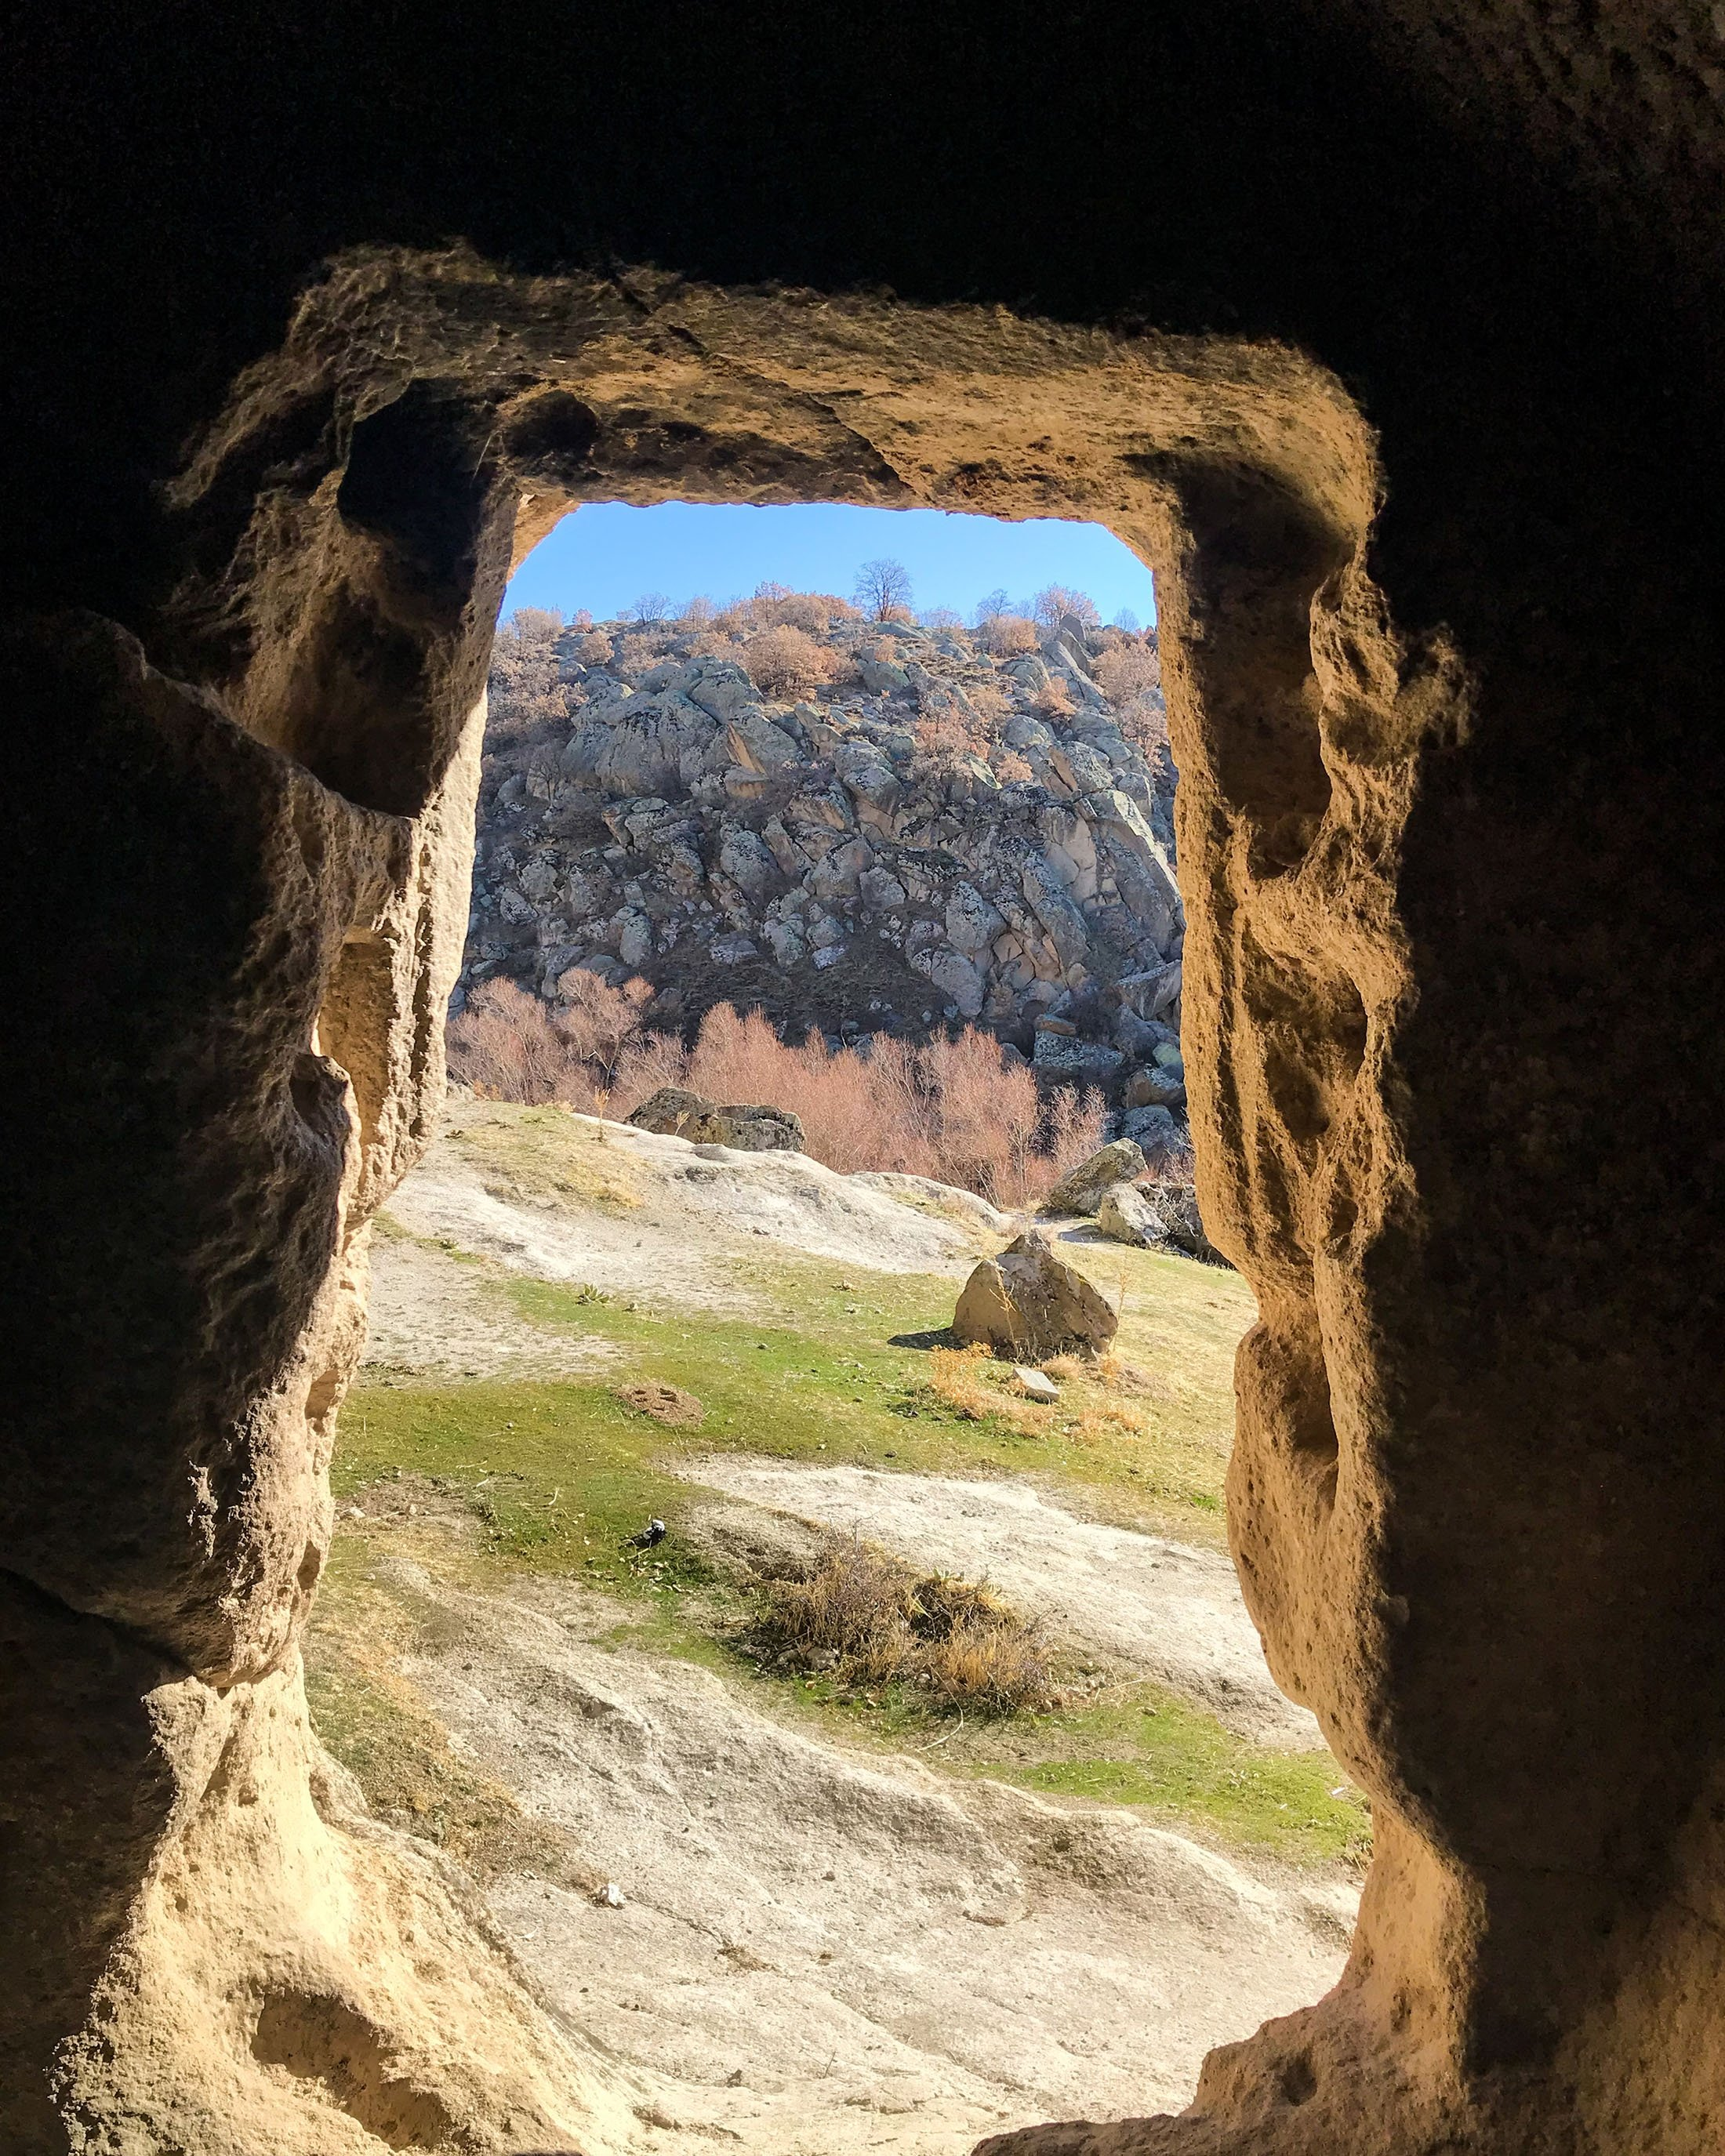 A view of Monastery Valley from one of the many rock dwellings in Güzelyurt, Aksaray, central Turkey. (Photo by Argun Konuk)